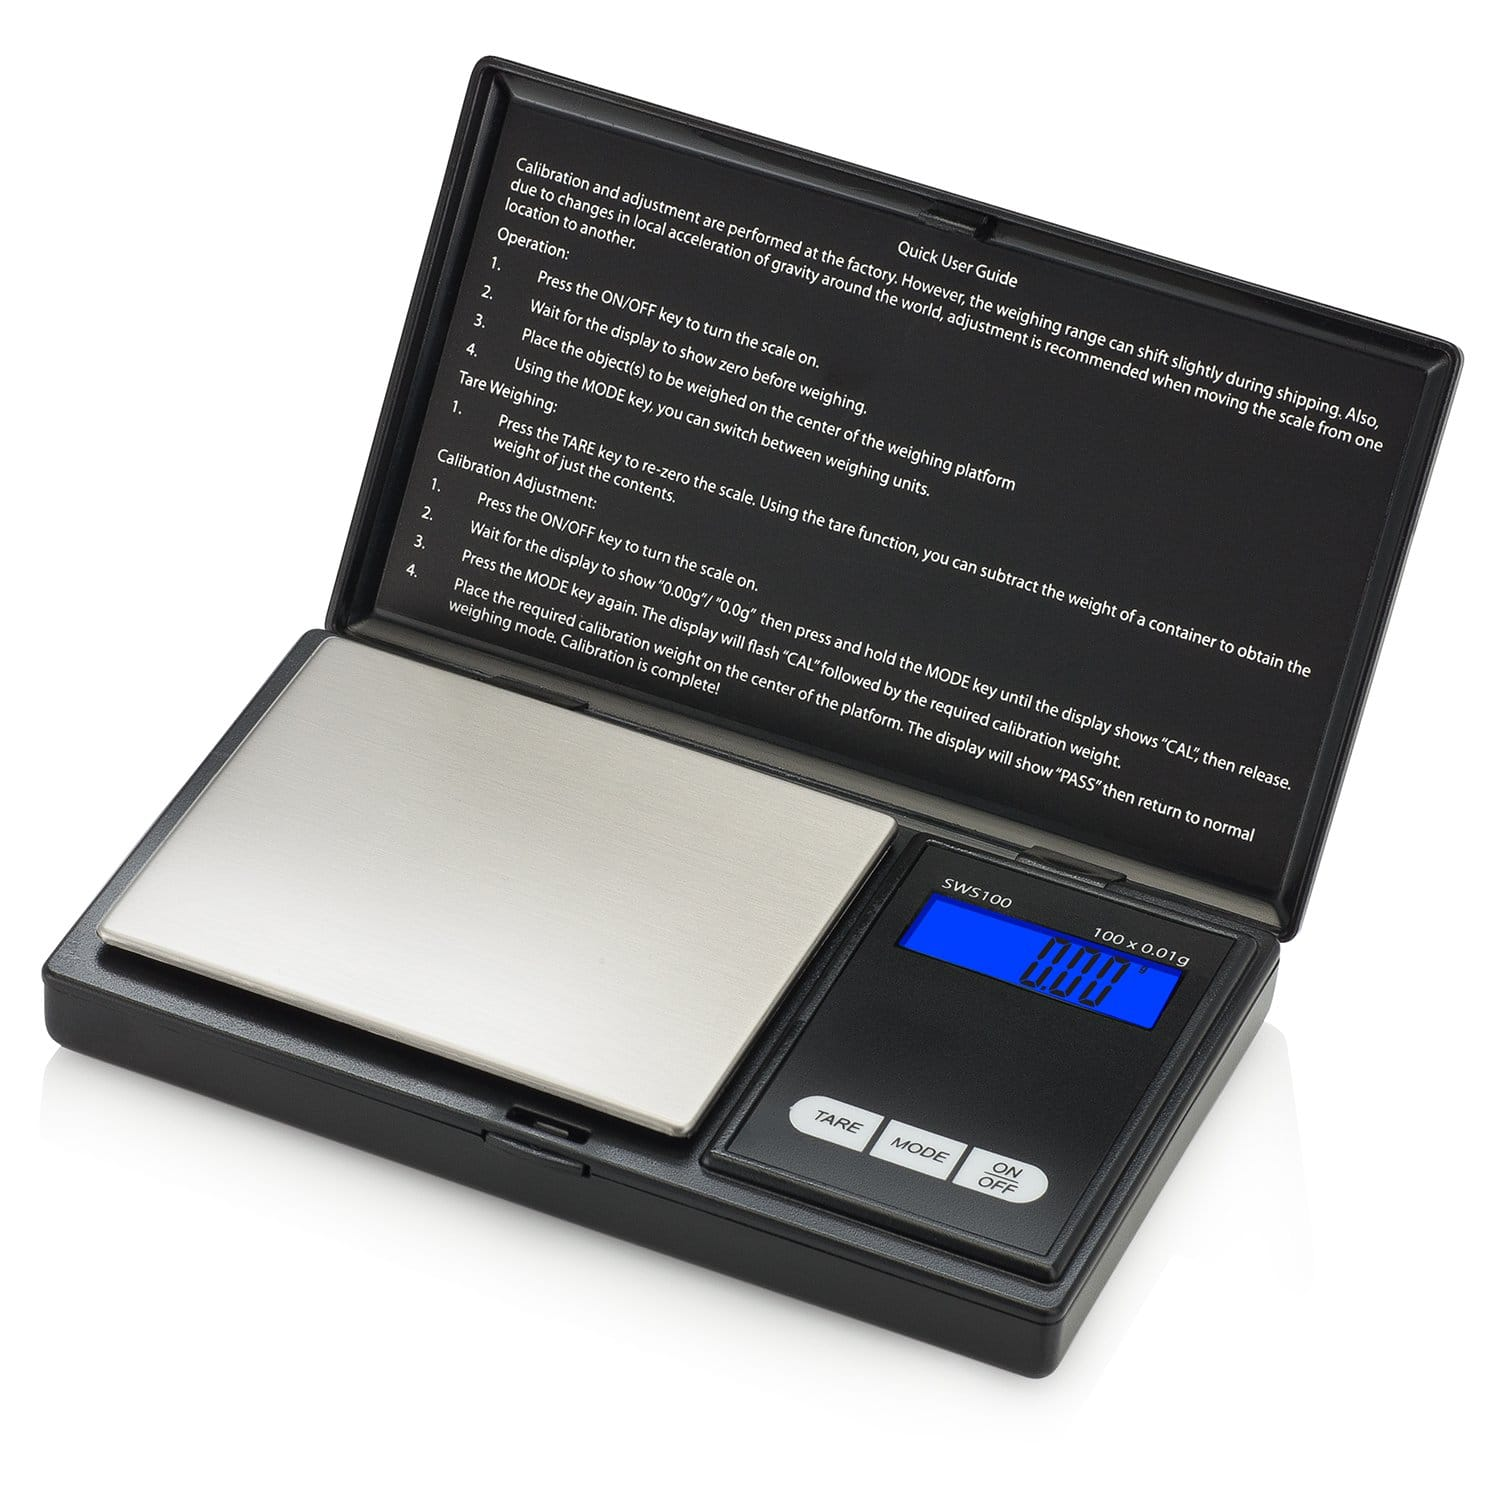 Smart Weigh SW100 Elite Digital Pocket Gram Scale